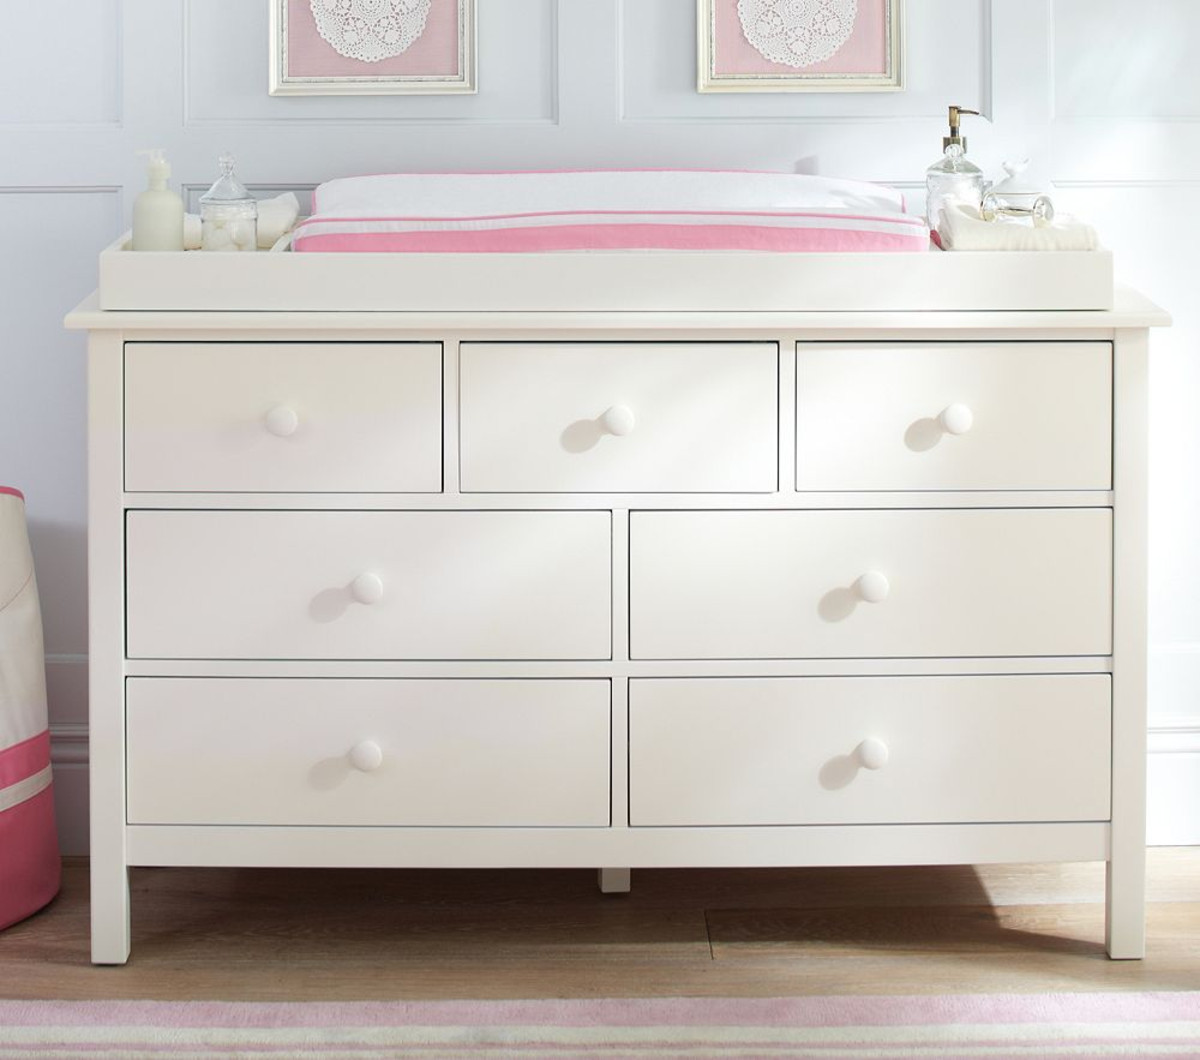 changing table with drawers image of: dresser top changing table storage mqtgpui